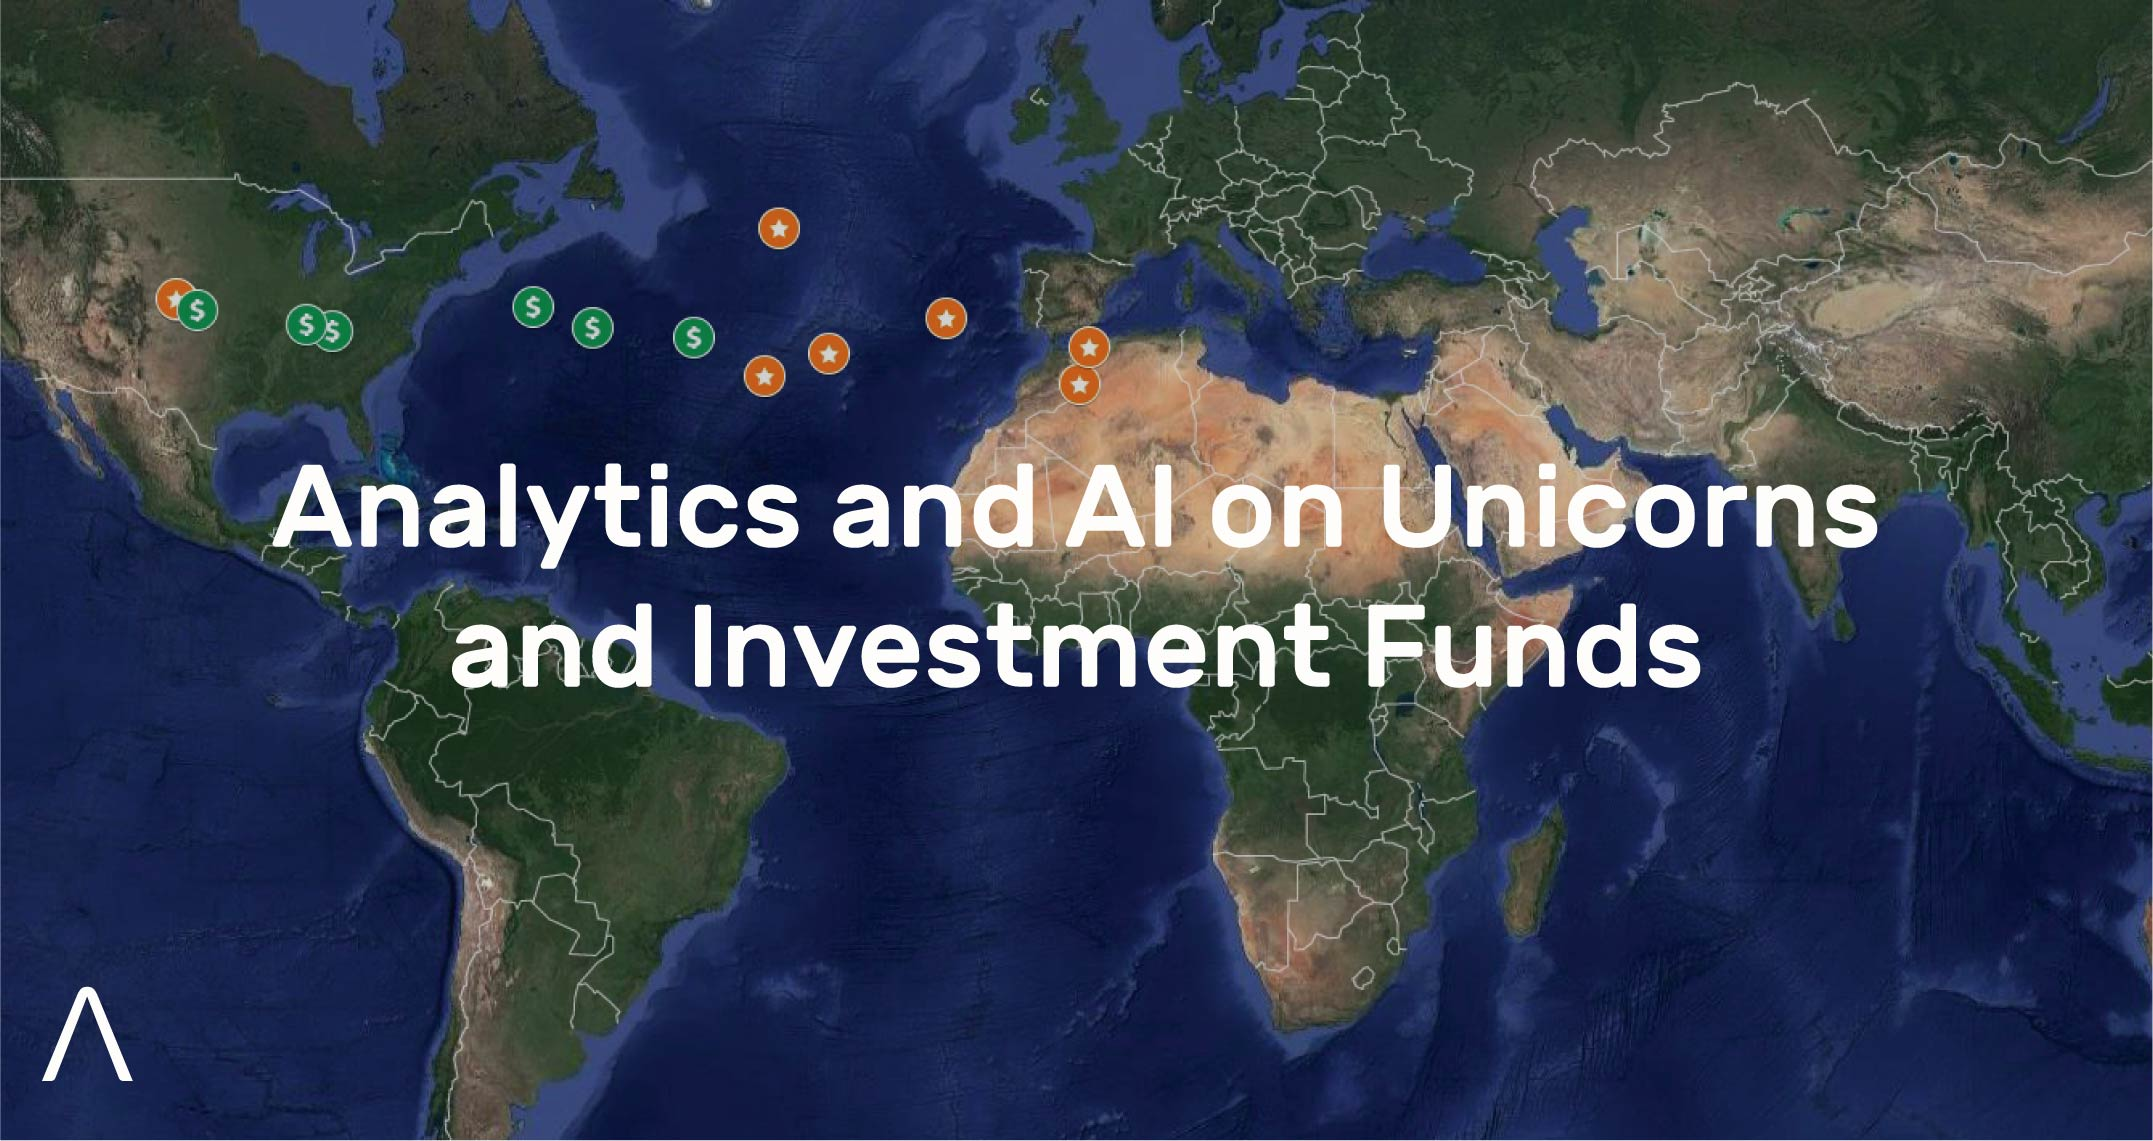 Analytics and AI on Unicorns and Investment Funds